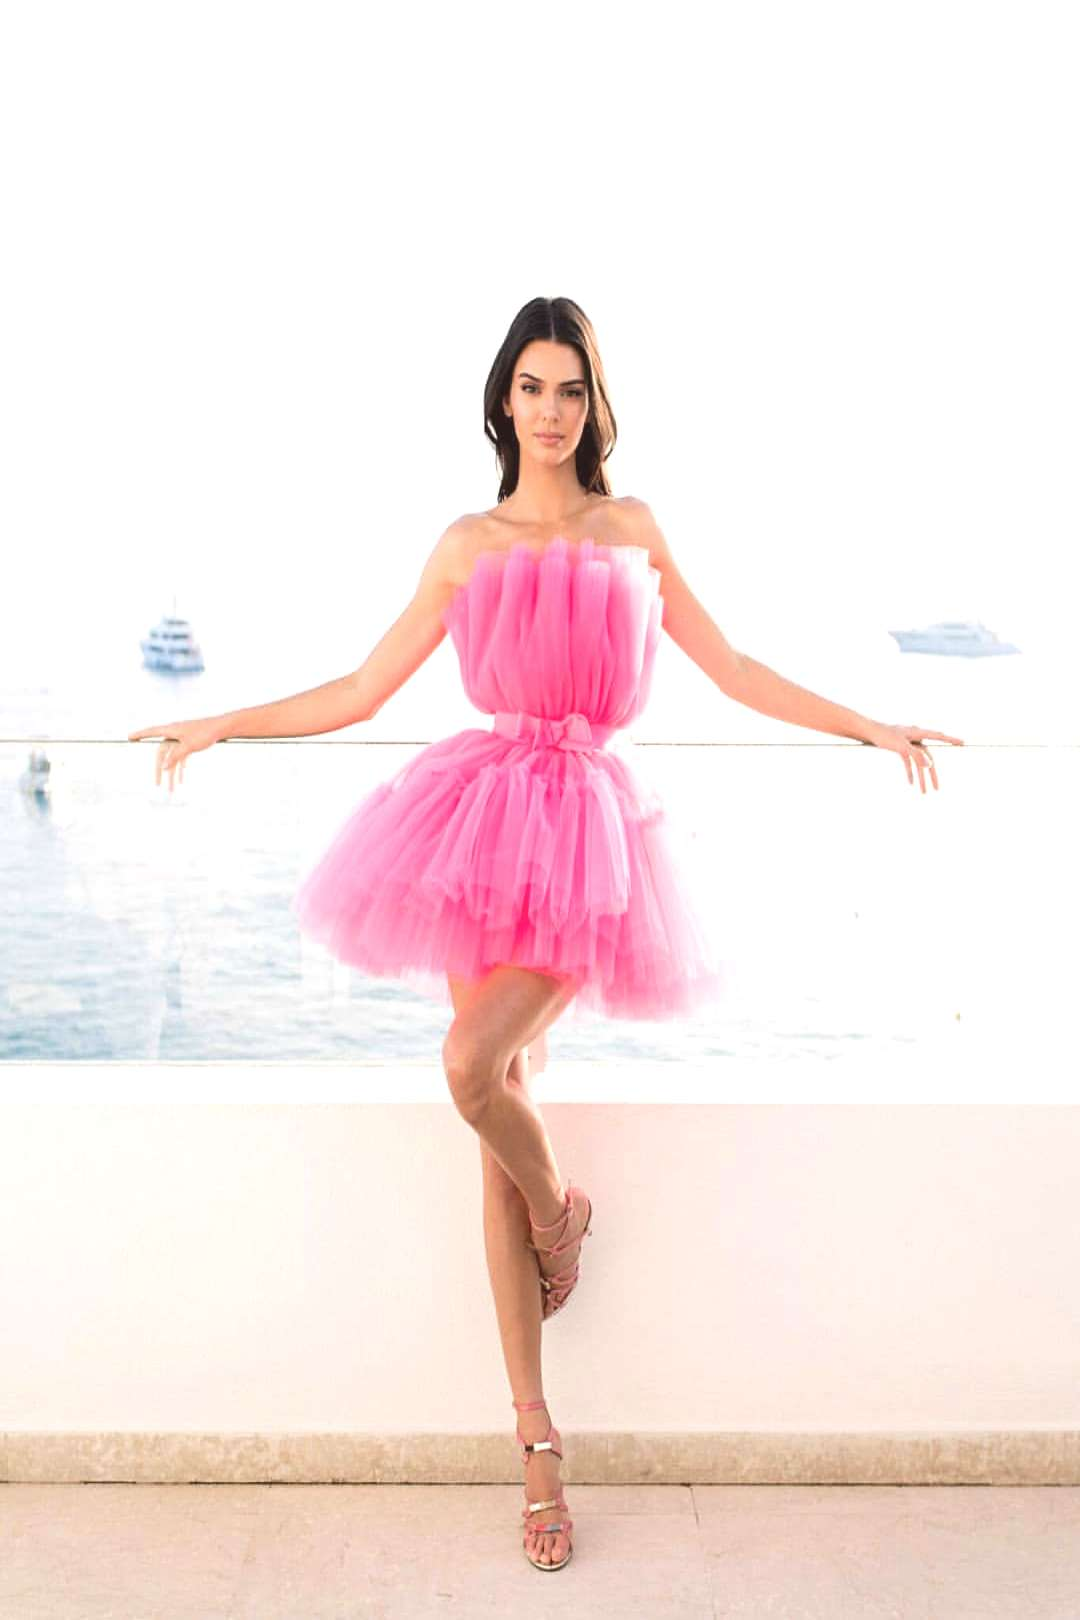 kendall on May 30 2020 and 1 person standing ocean and shoes